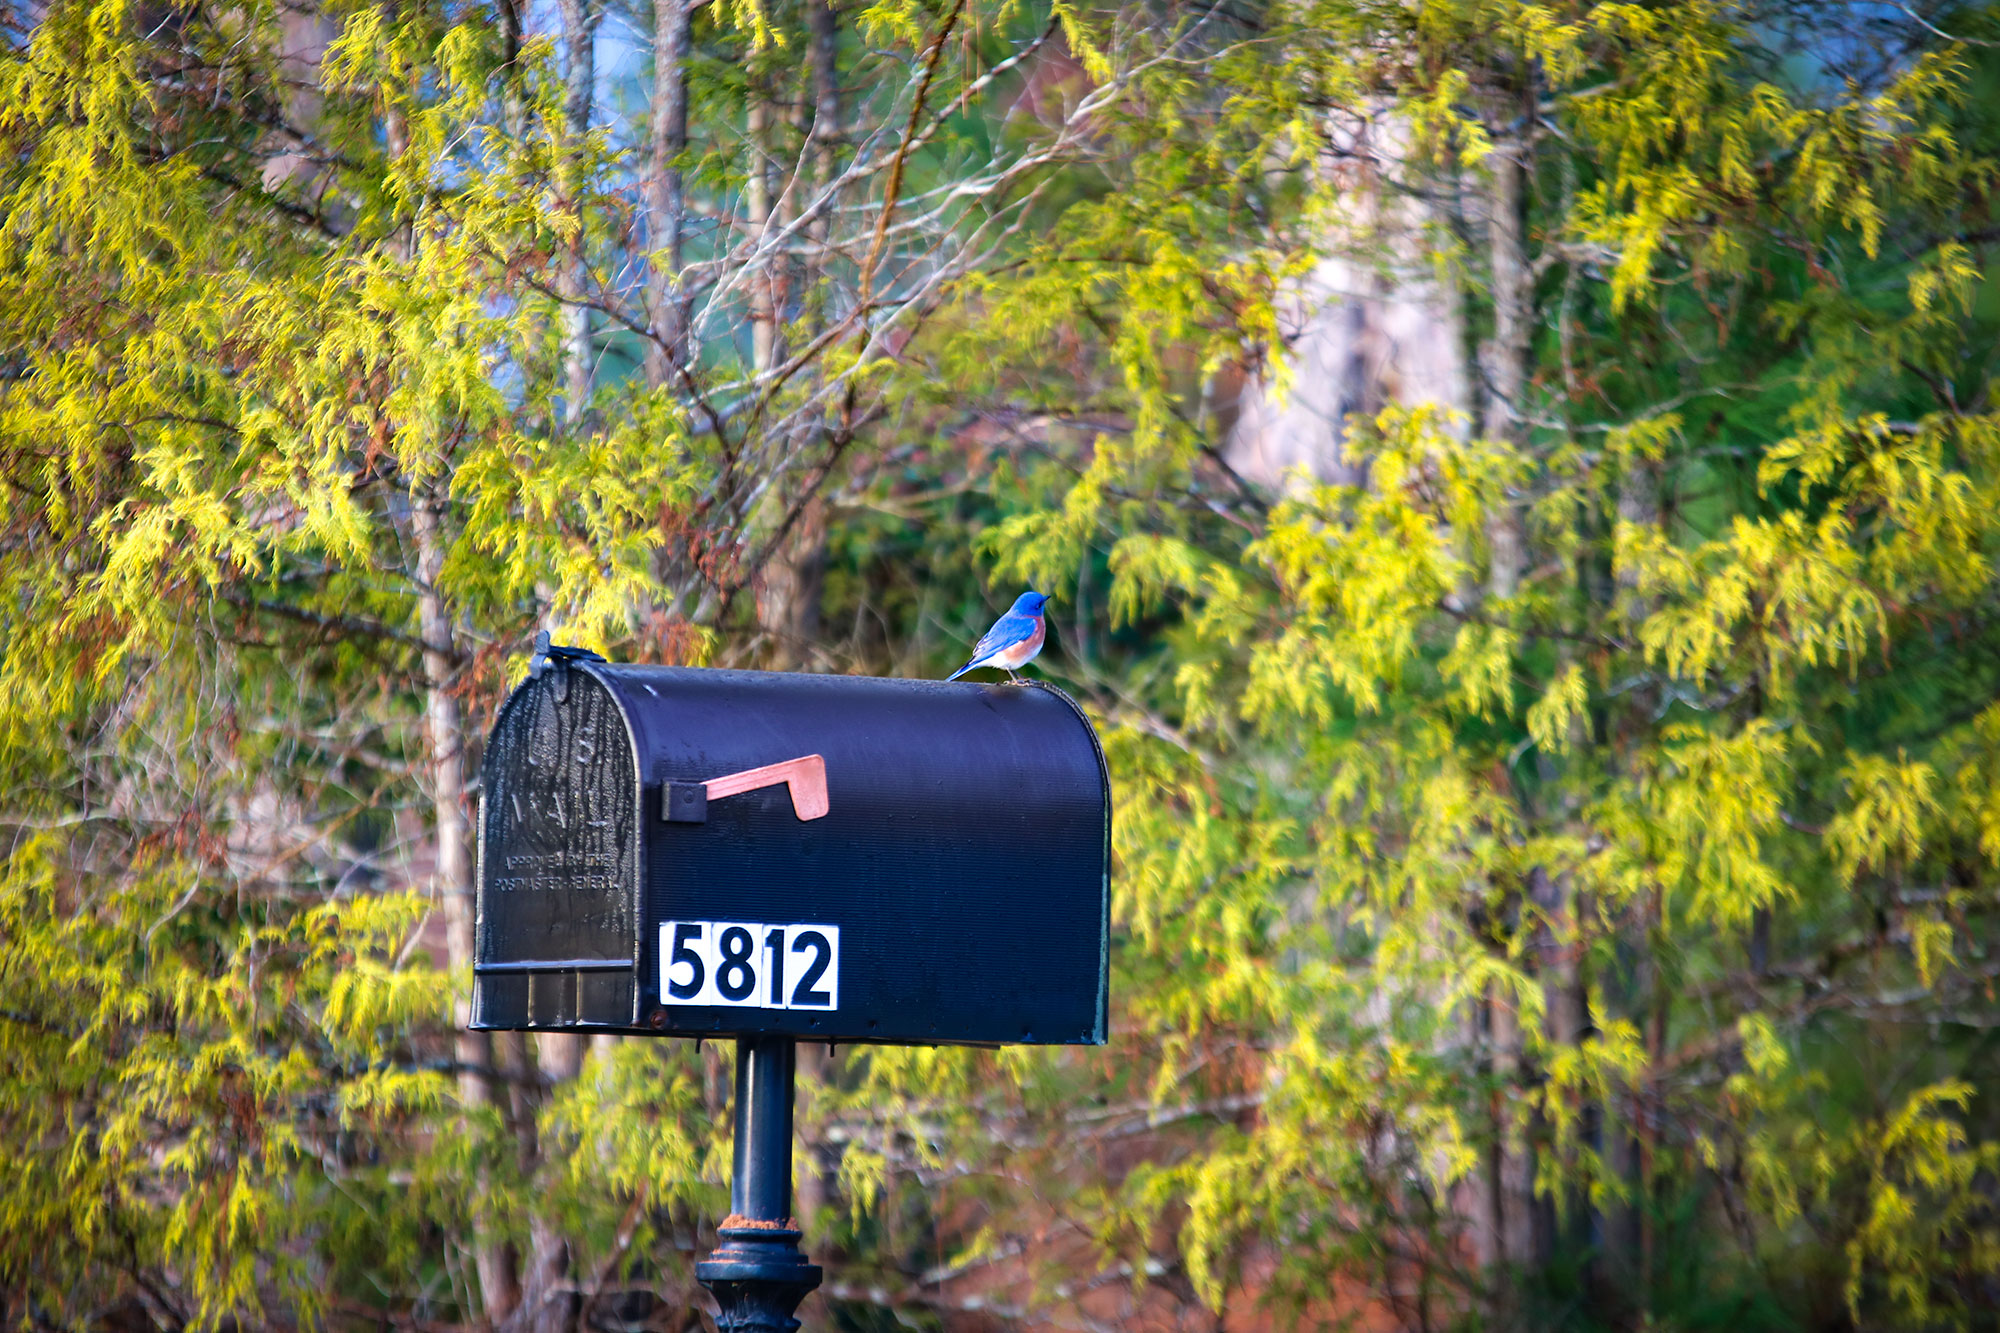 bluebird-considering-new-home-at-savannah-lakes